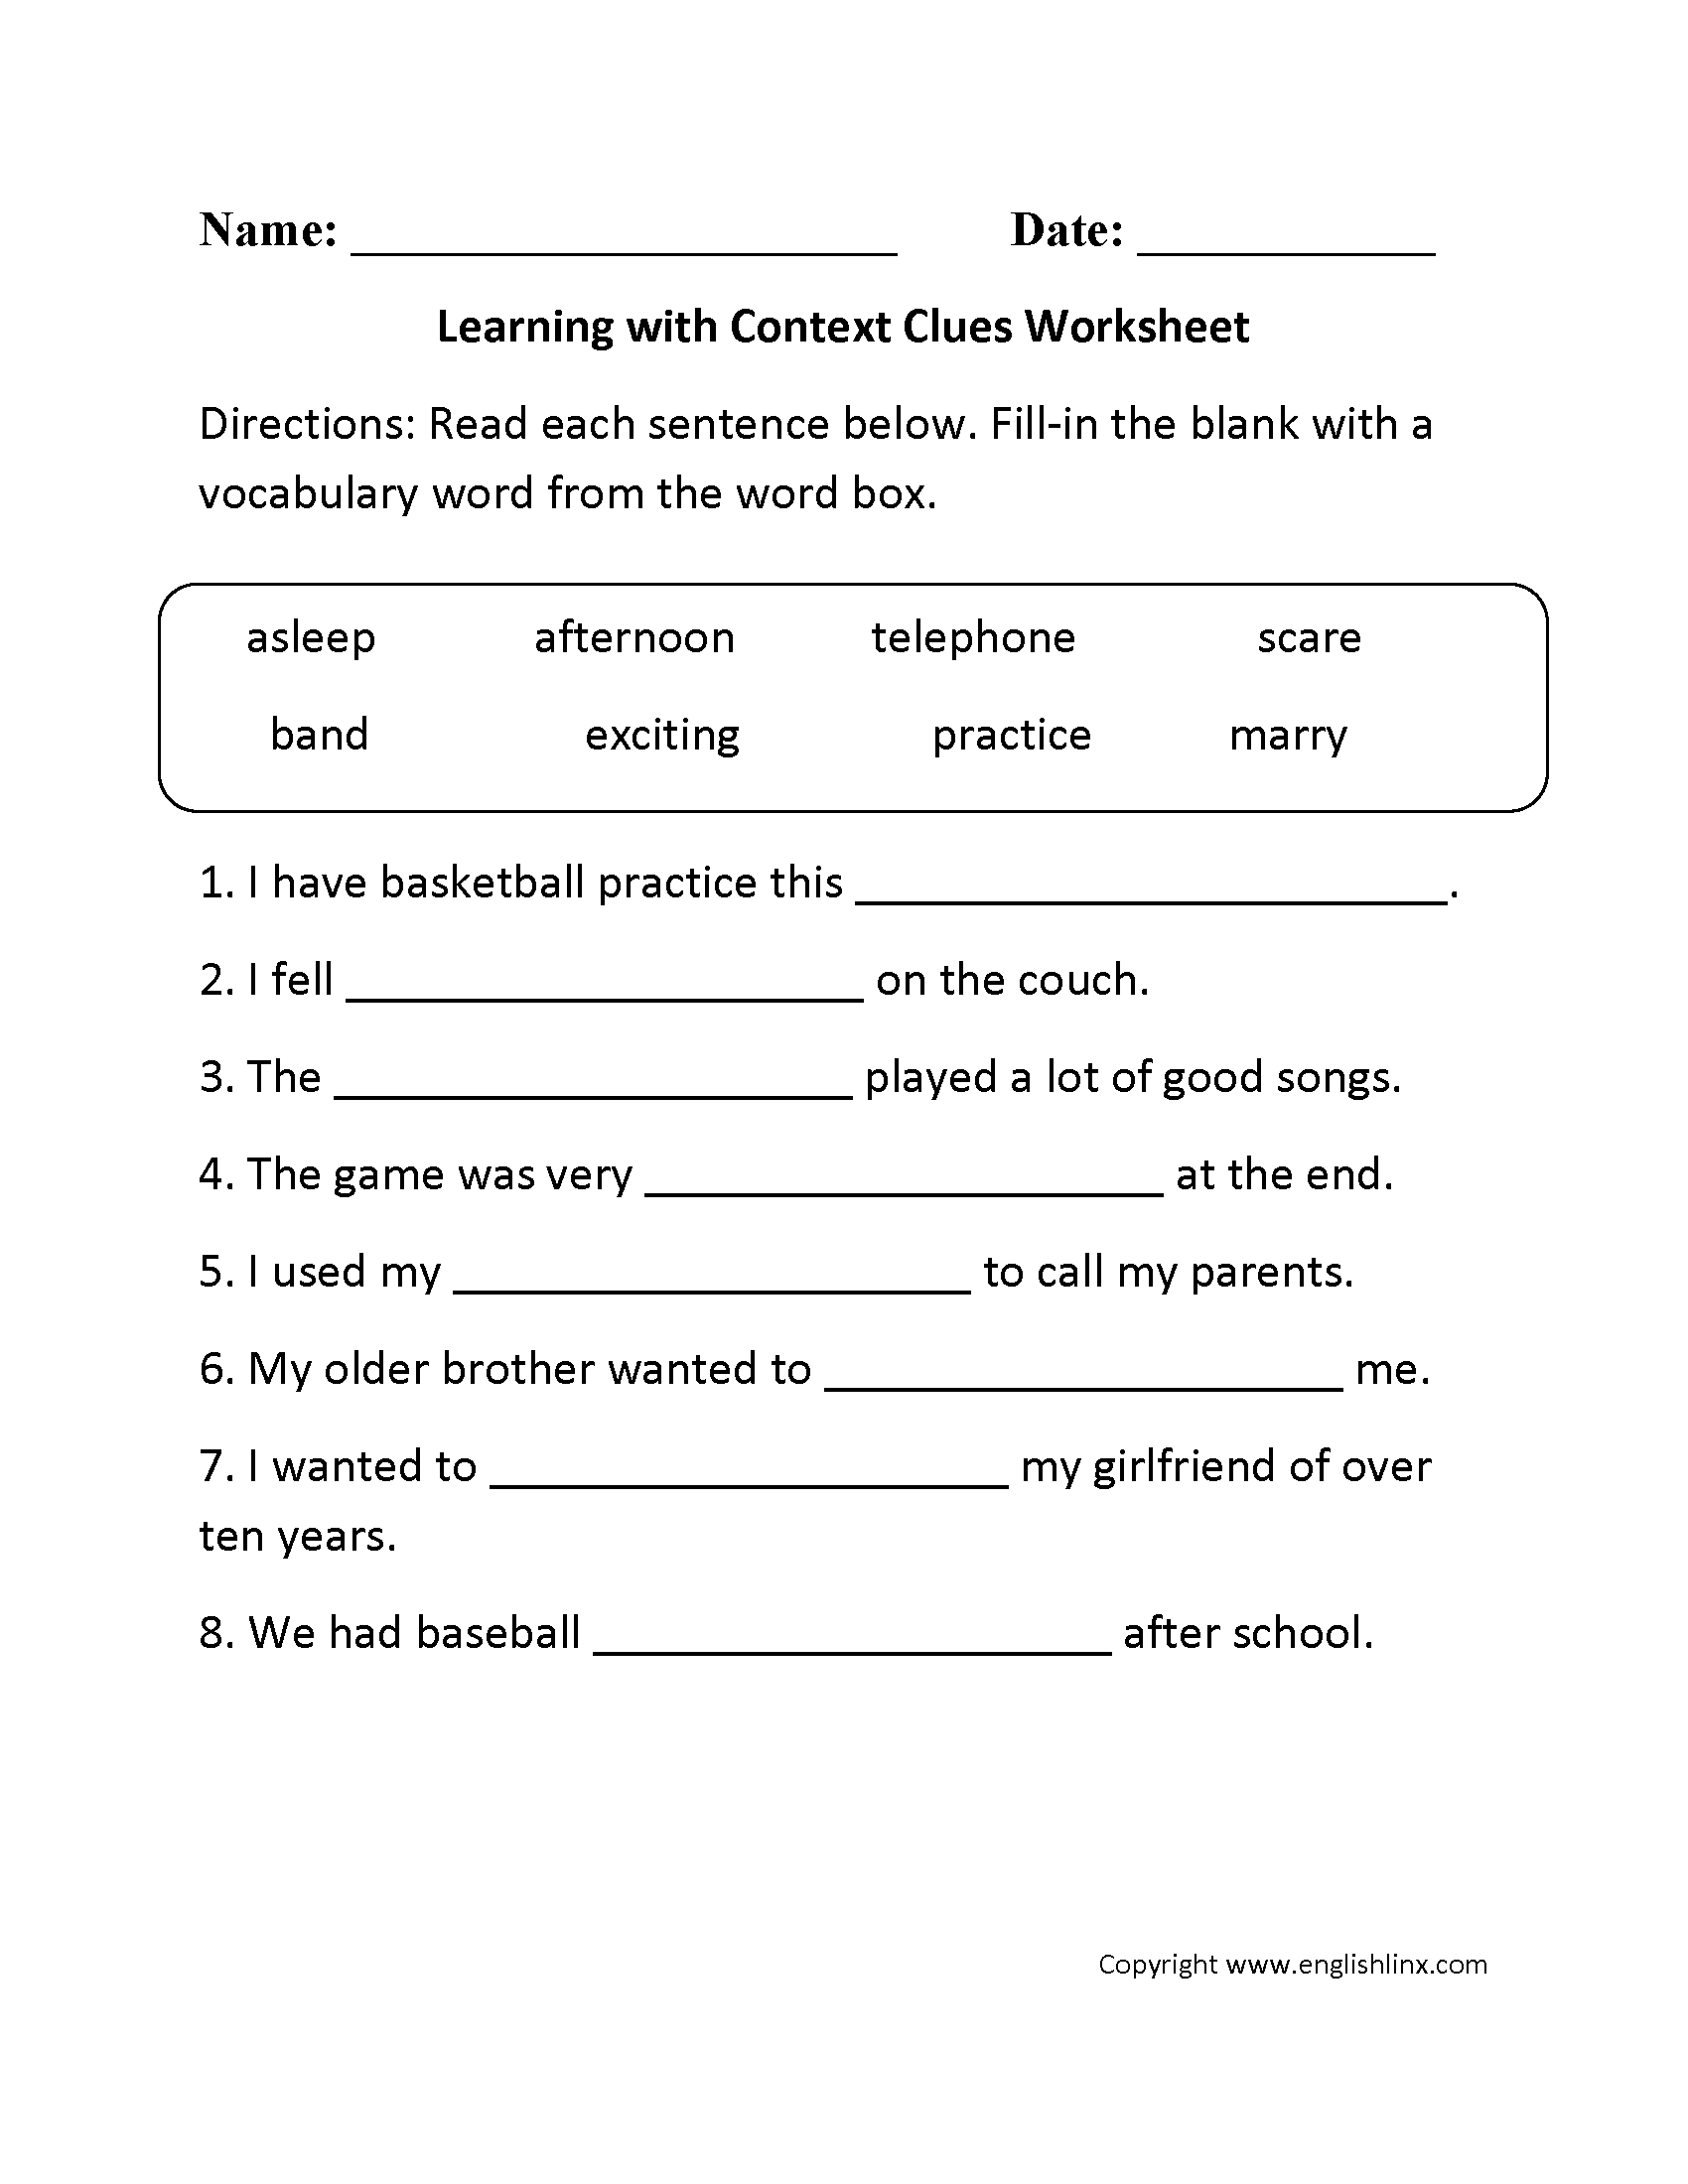 Worksheets 3rd Grade Context Clues Worksheets reading worksheets context clues worksheet